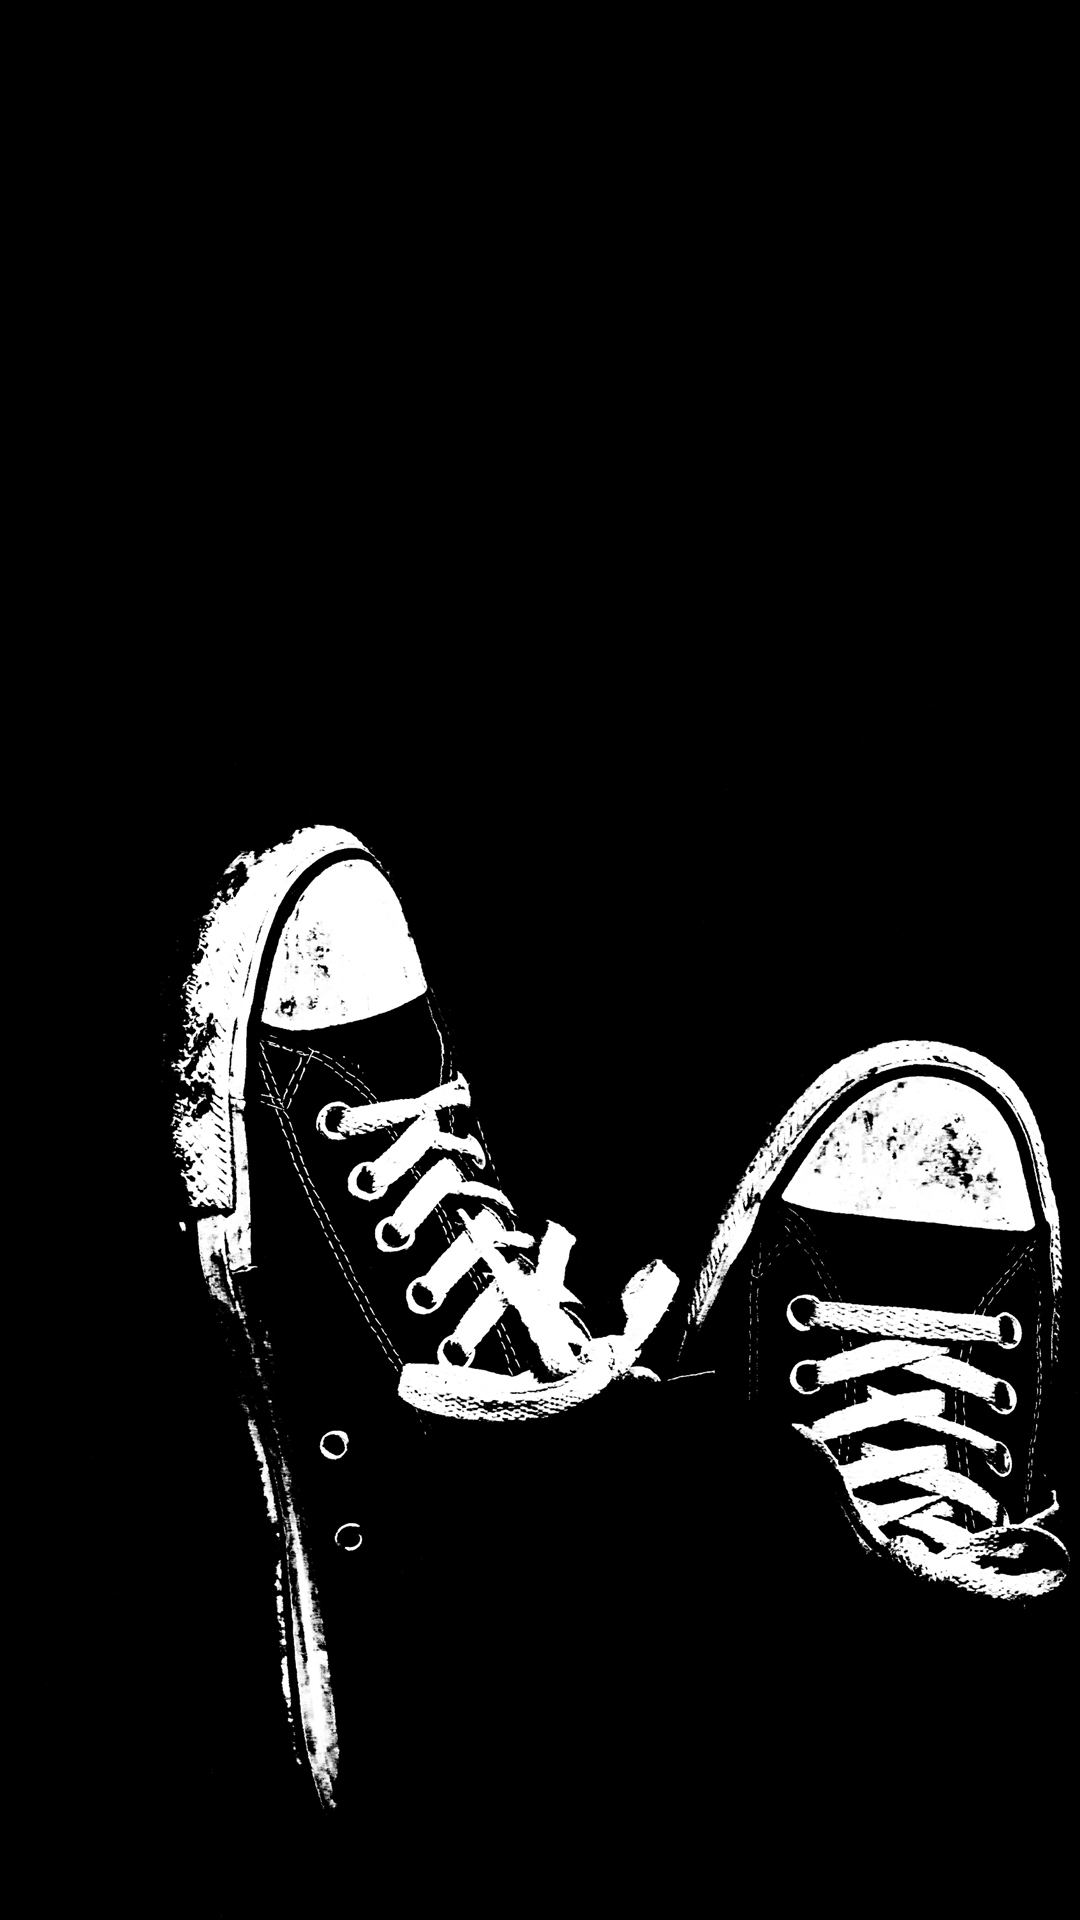 Tapout Iphone Wallpaper Converse Shoes Iphone Wallpaper Hd